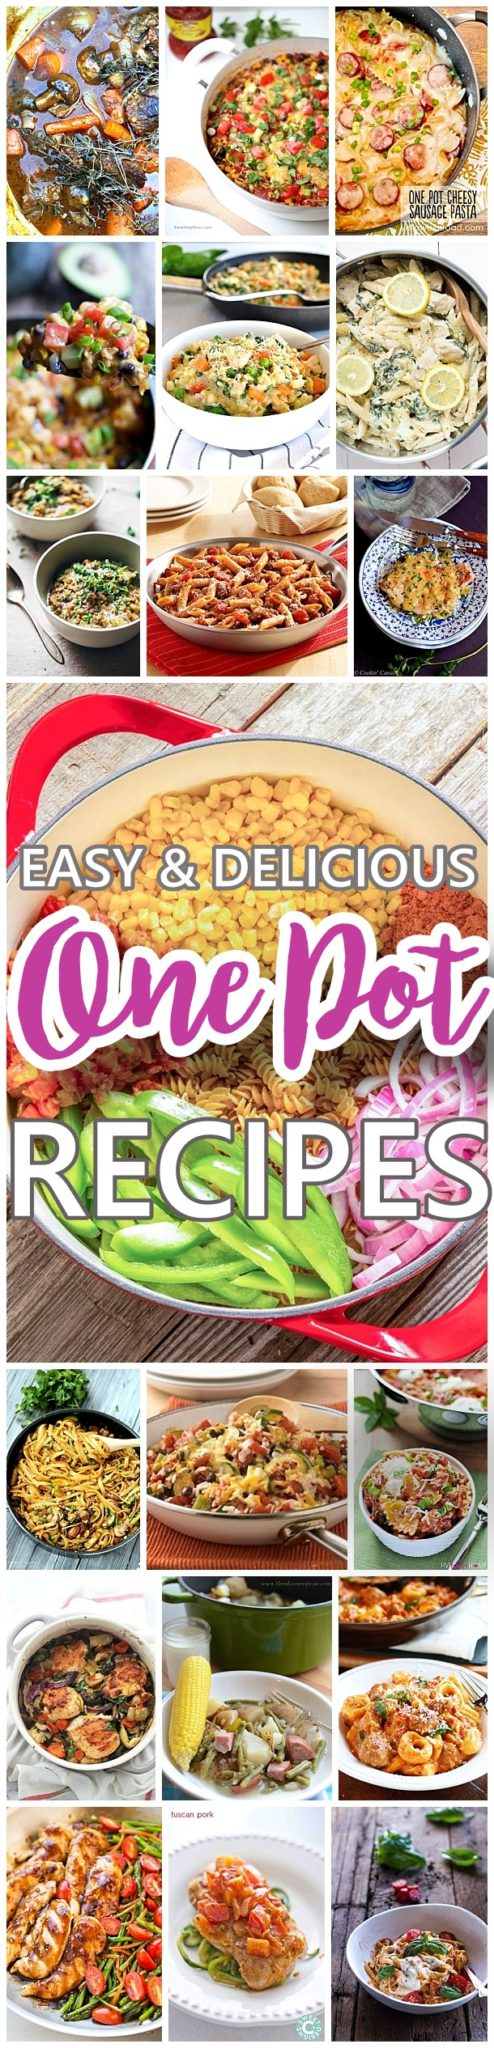 Easy recipes for a busy family